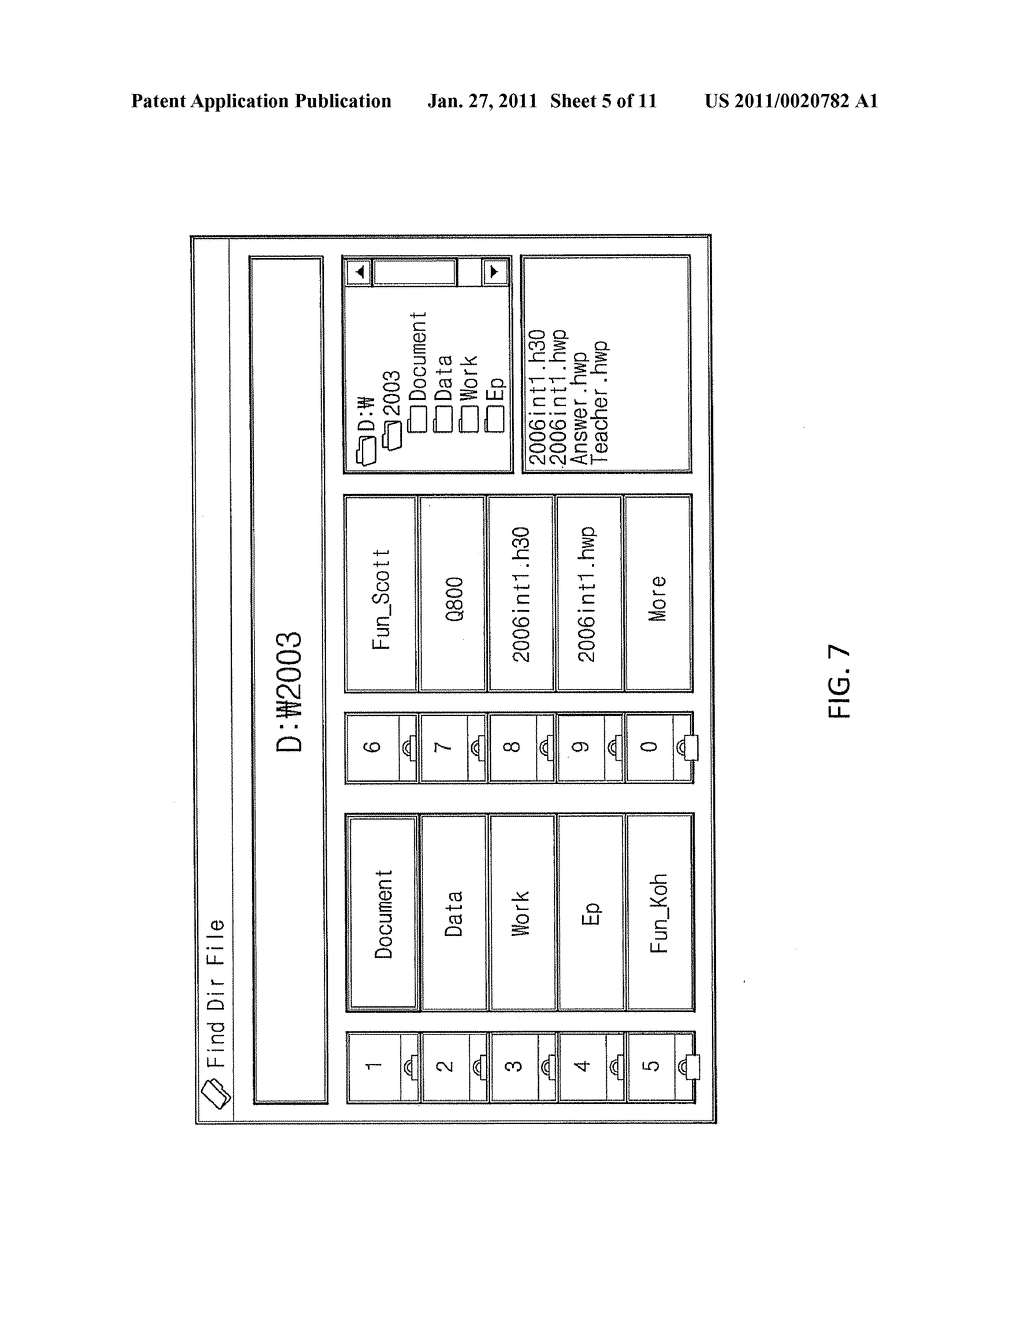 METHOD OF CONTROLLING COMPUTER PROGRAM AND SEARCHING FOLD AND FILE USING OBJECT-ORIENTED BUTTON, CONTROL AND PRESENTATION SYSTEM USING THE SAME AND REMOTE CONTROLLER USING THE SAME - diagram, schematic, and image 06